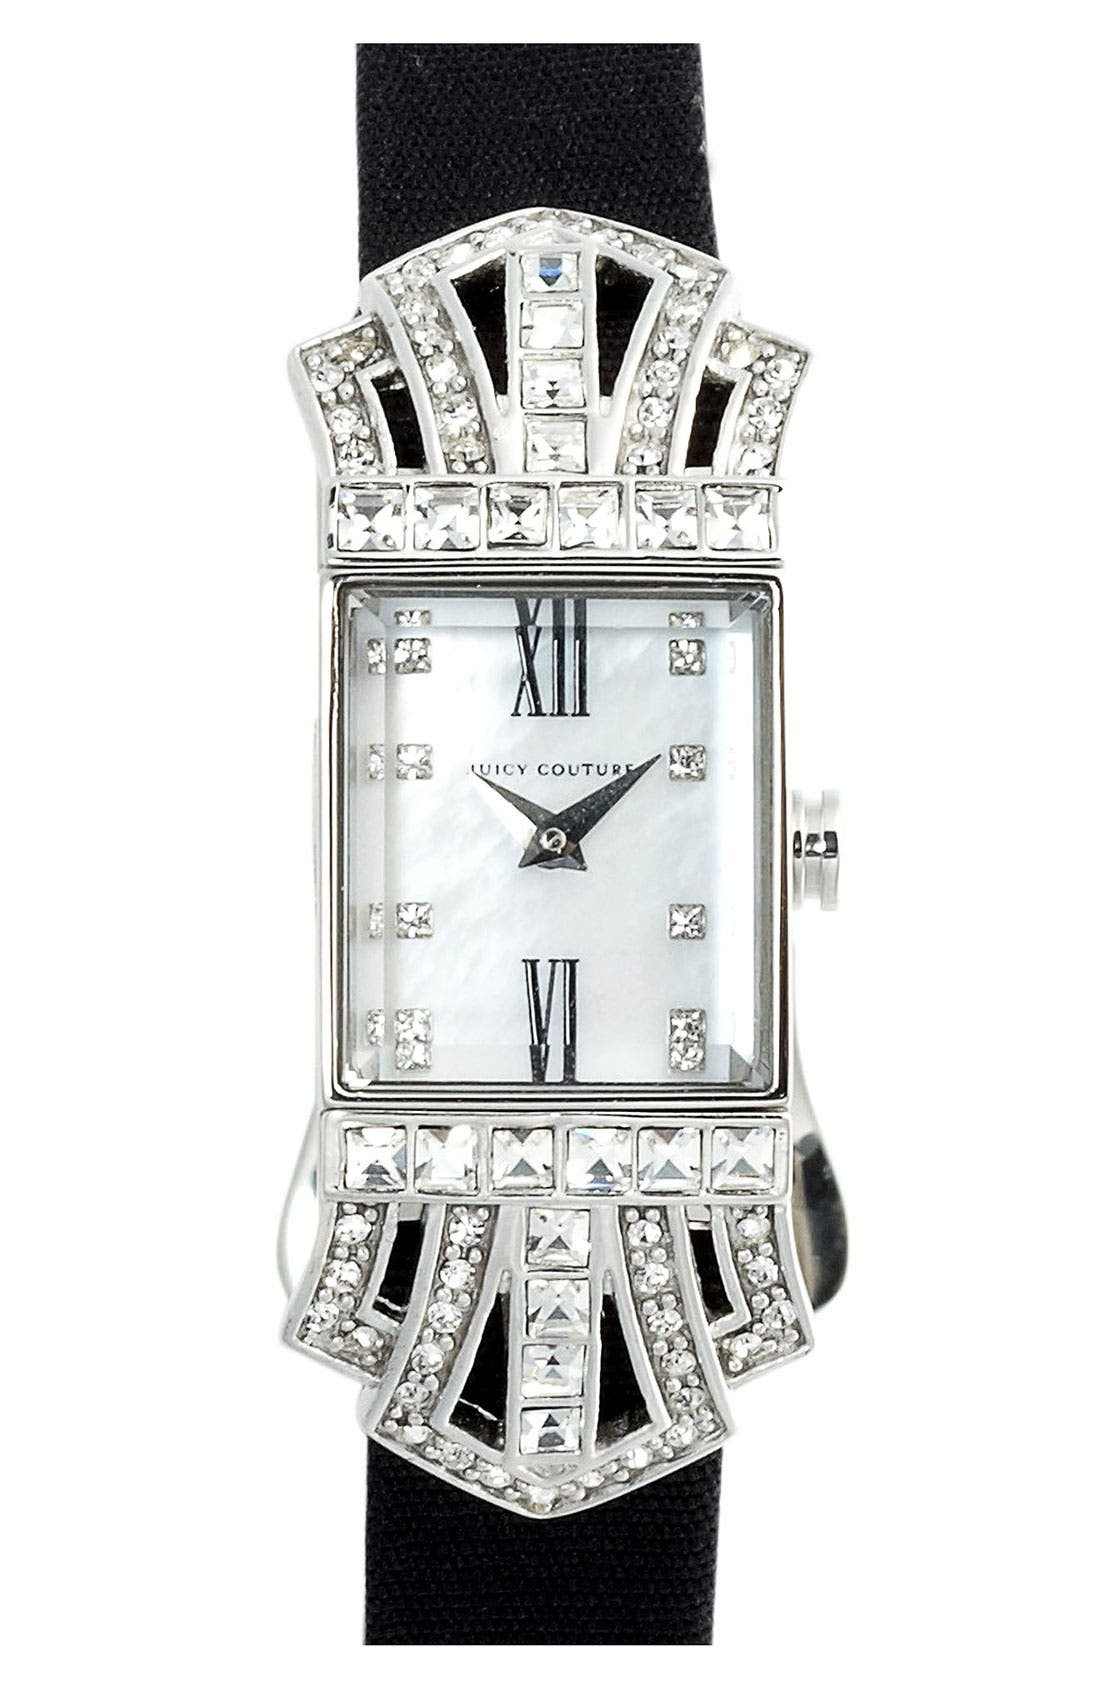 Main Image - Juicy Couture 'Marianne' Square Case Grosgrain Strap Watch